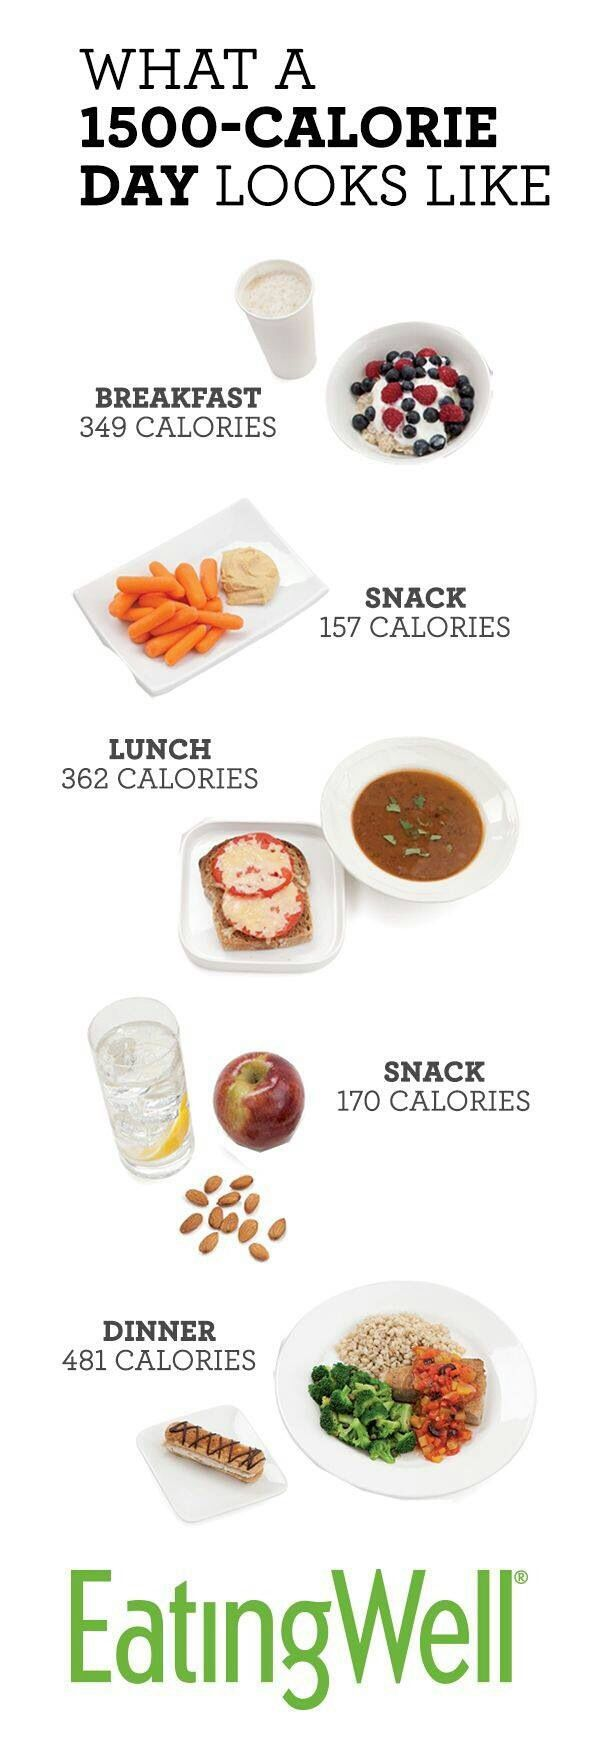 Eating Out 600 Calories